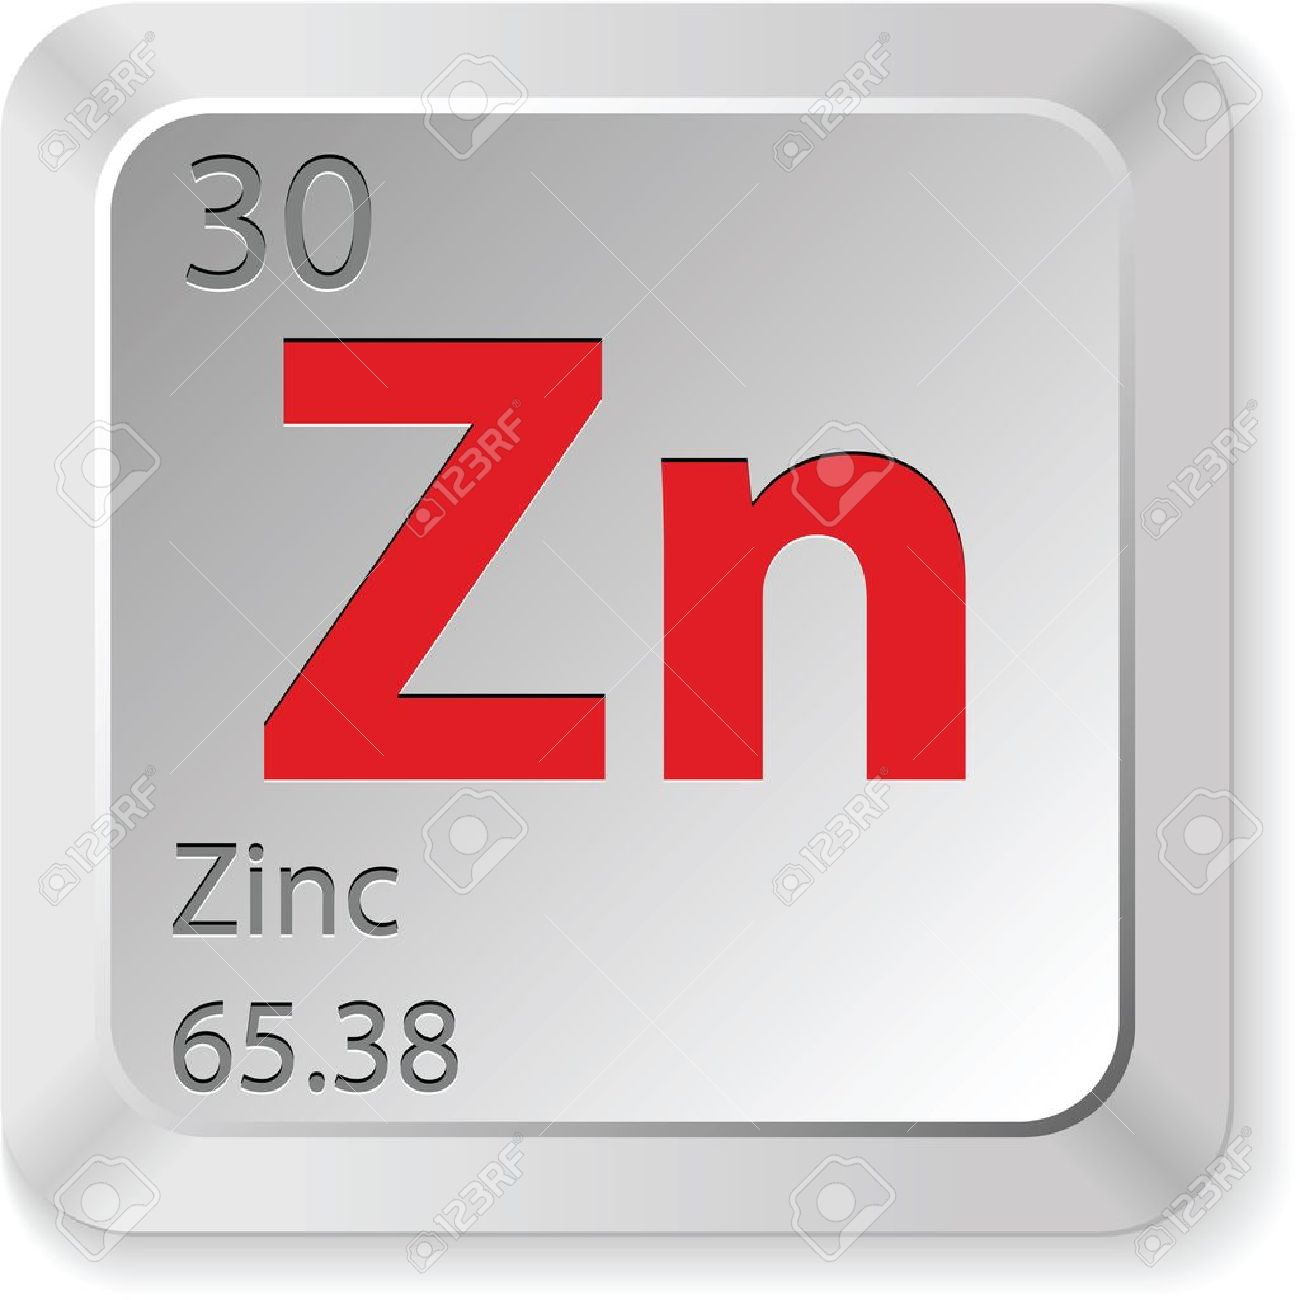 Zinc element royalty free cliparts vectors and stock zinc element stock vector 16703865 gamestrikefo Image collections